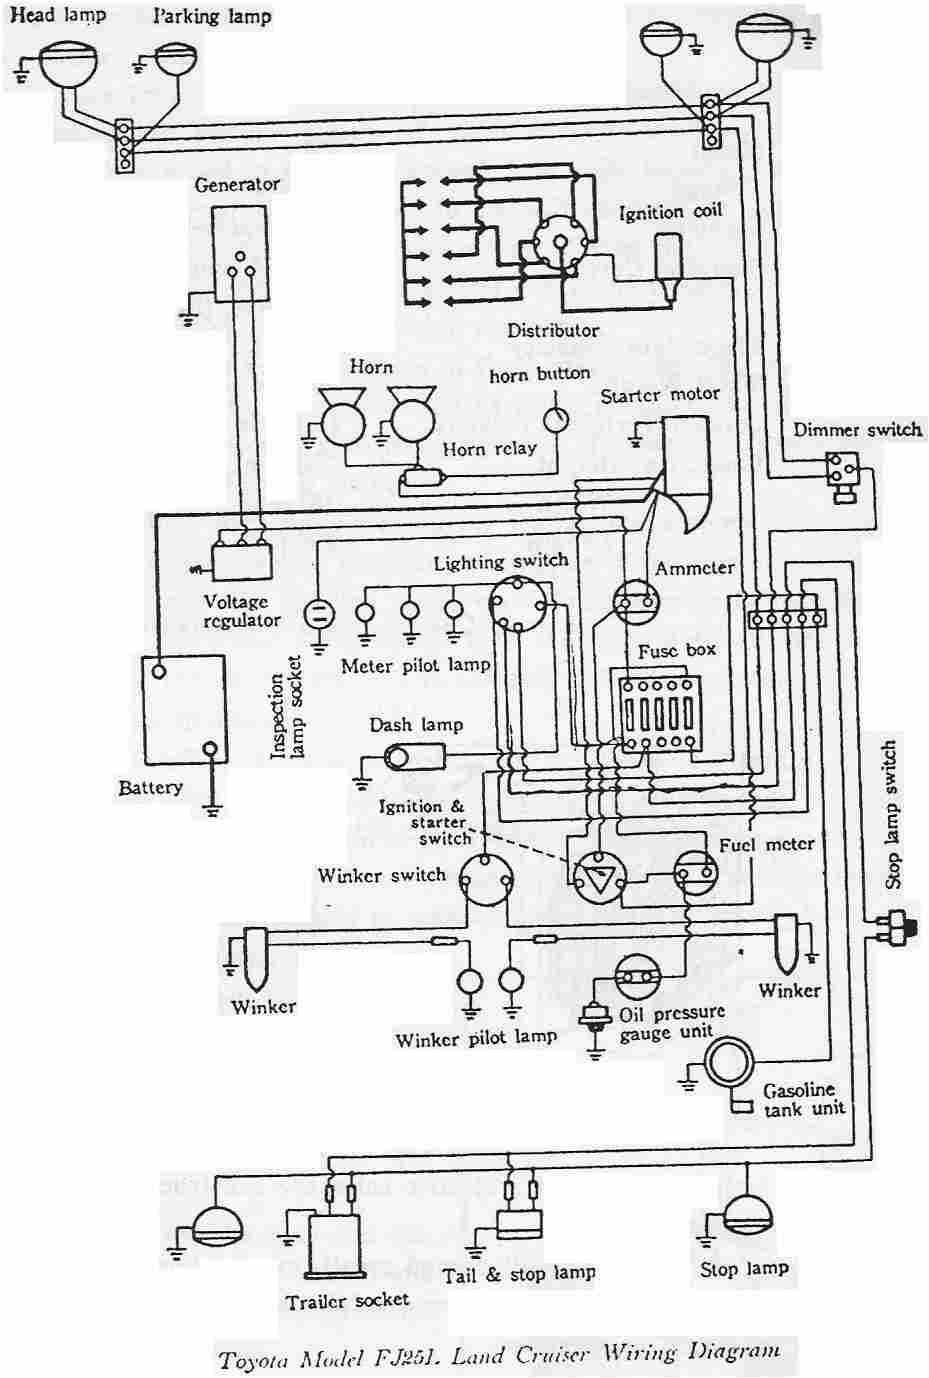 Understand Car Wiring Diagram : Toyota land cruiser fj electrical wiring diagram all